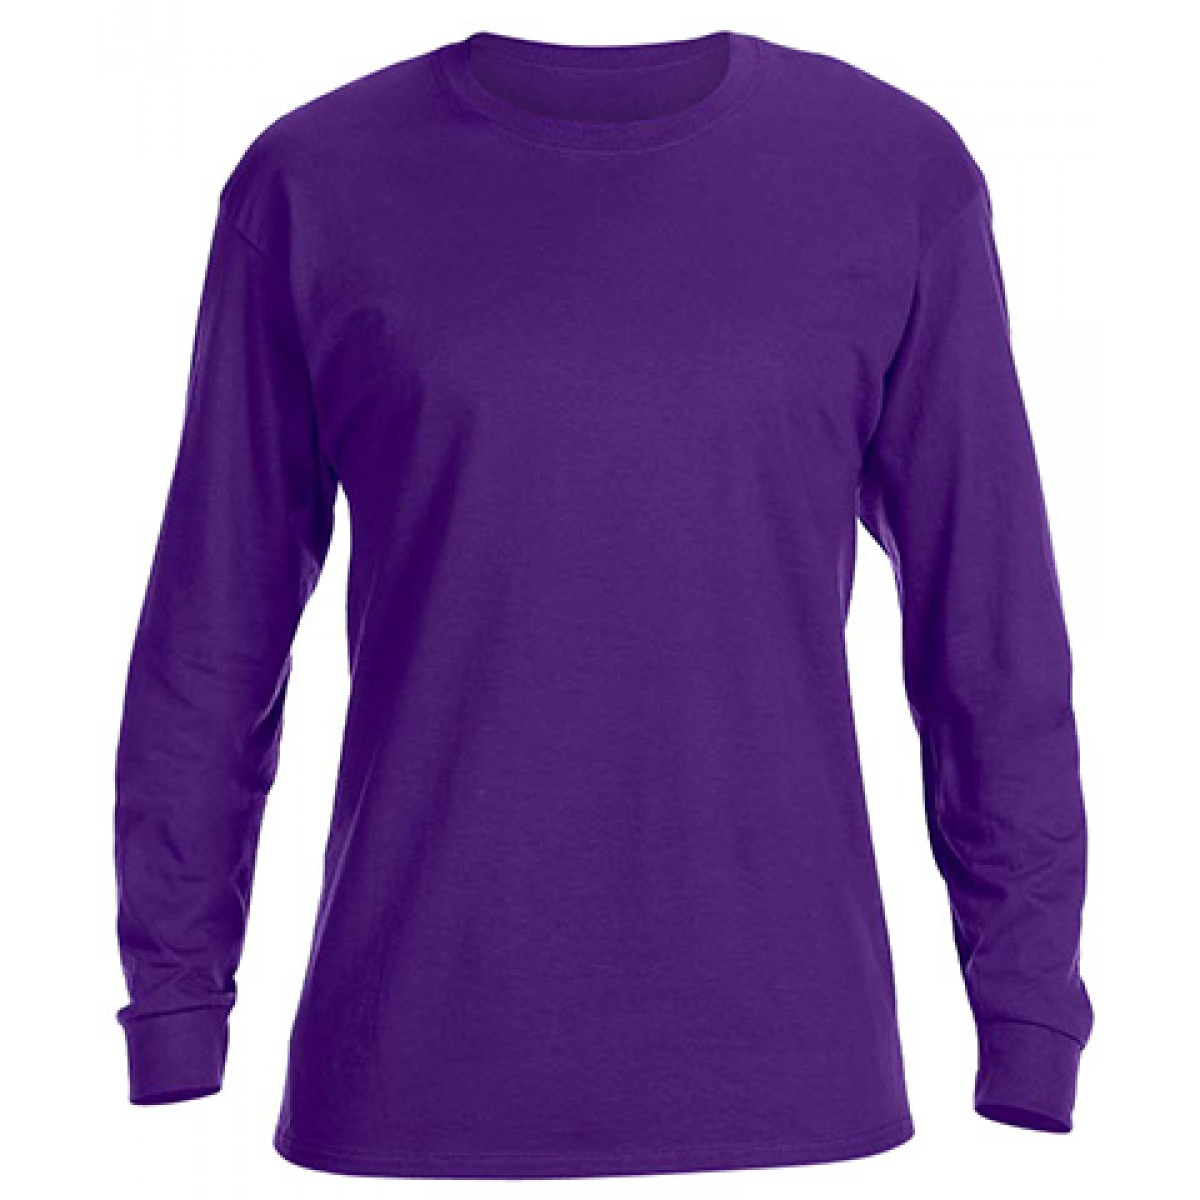 Basic Long Sleeve Crew Neck -Purple-YS